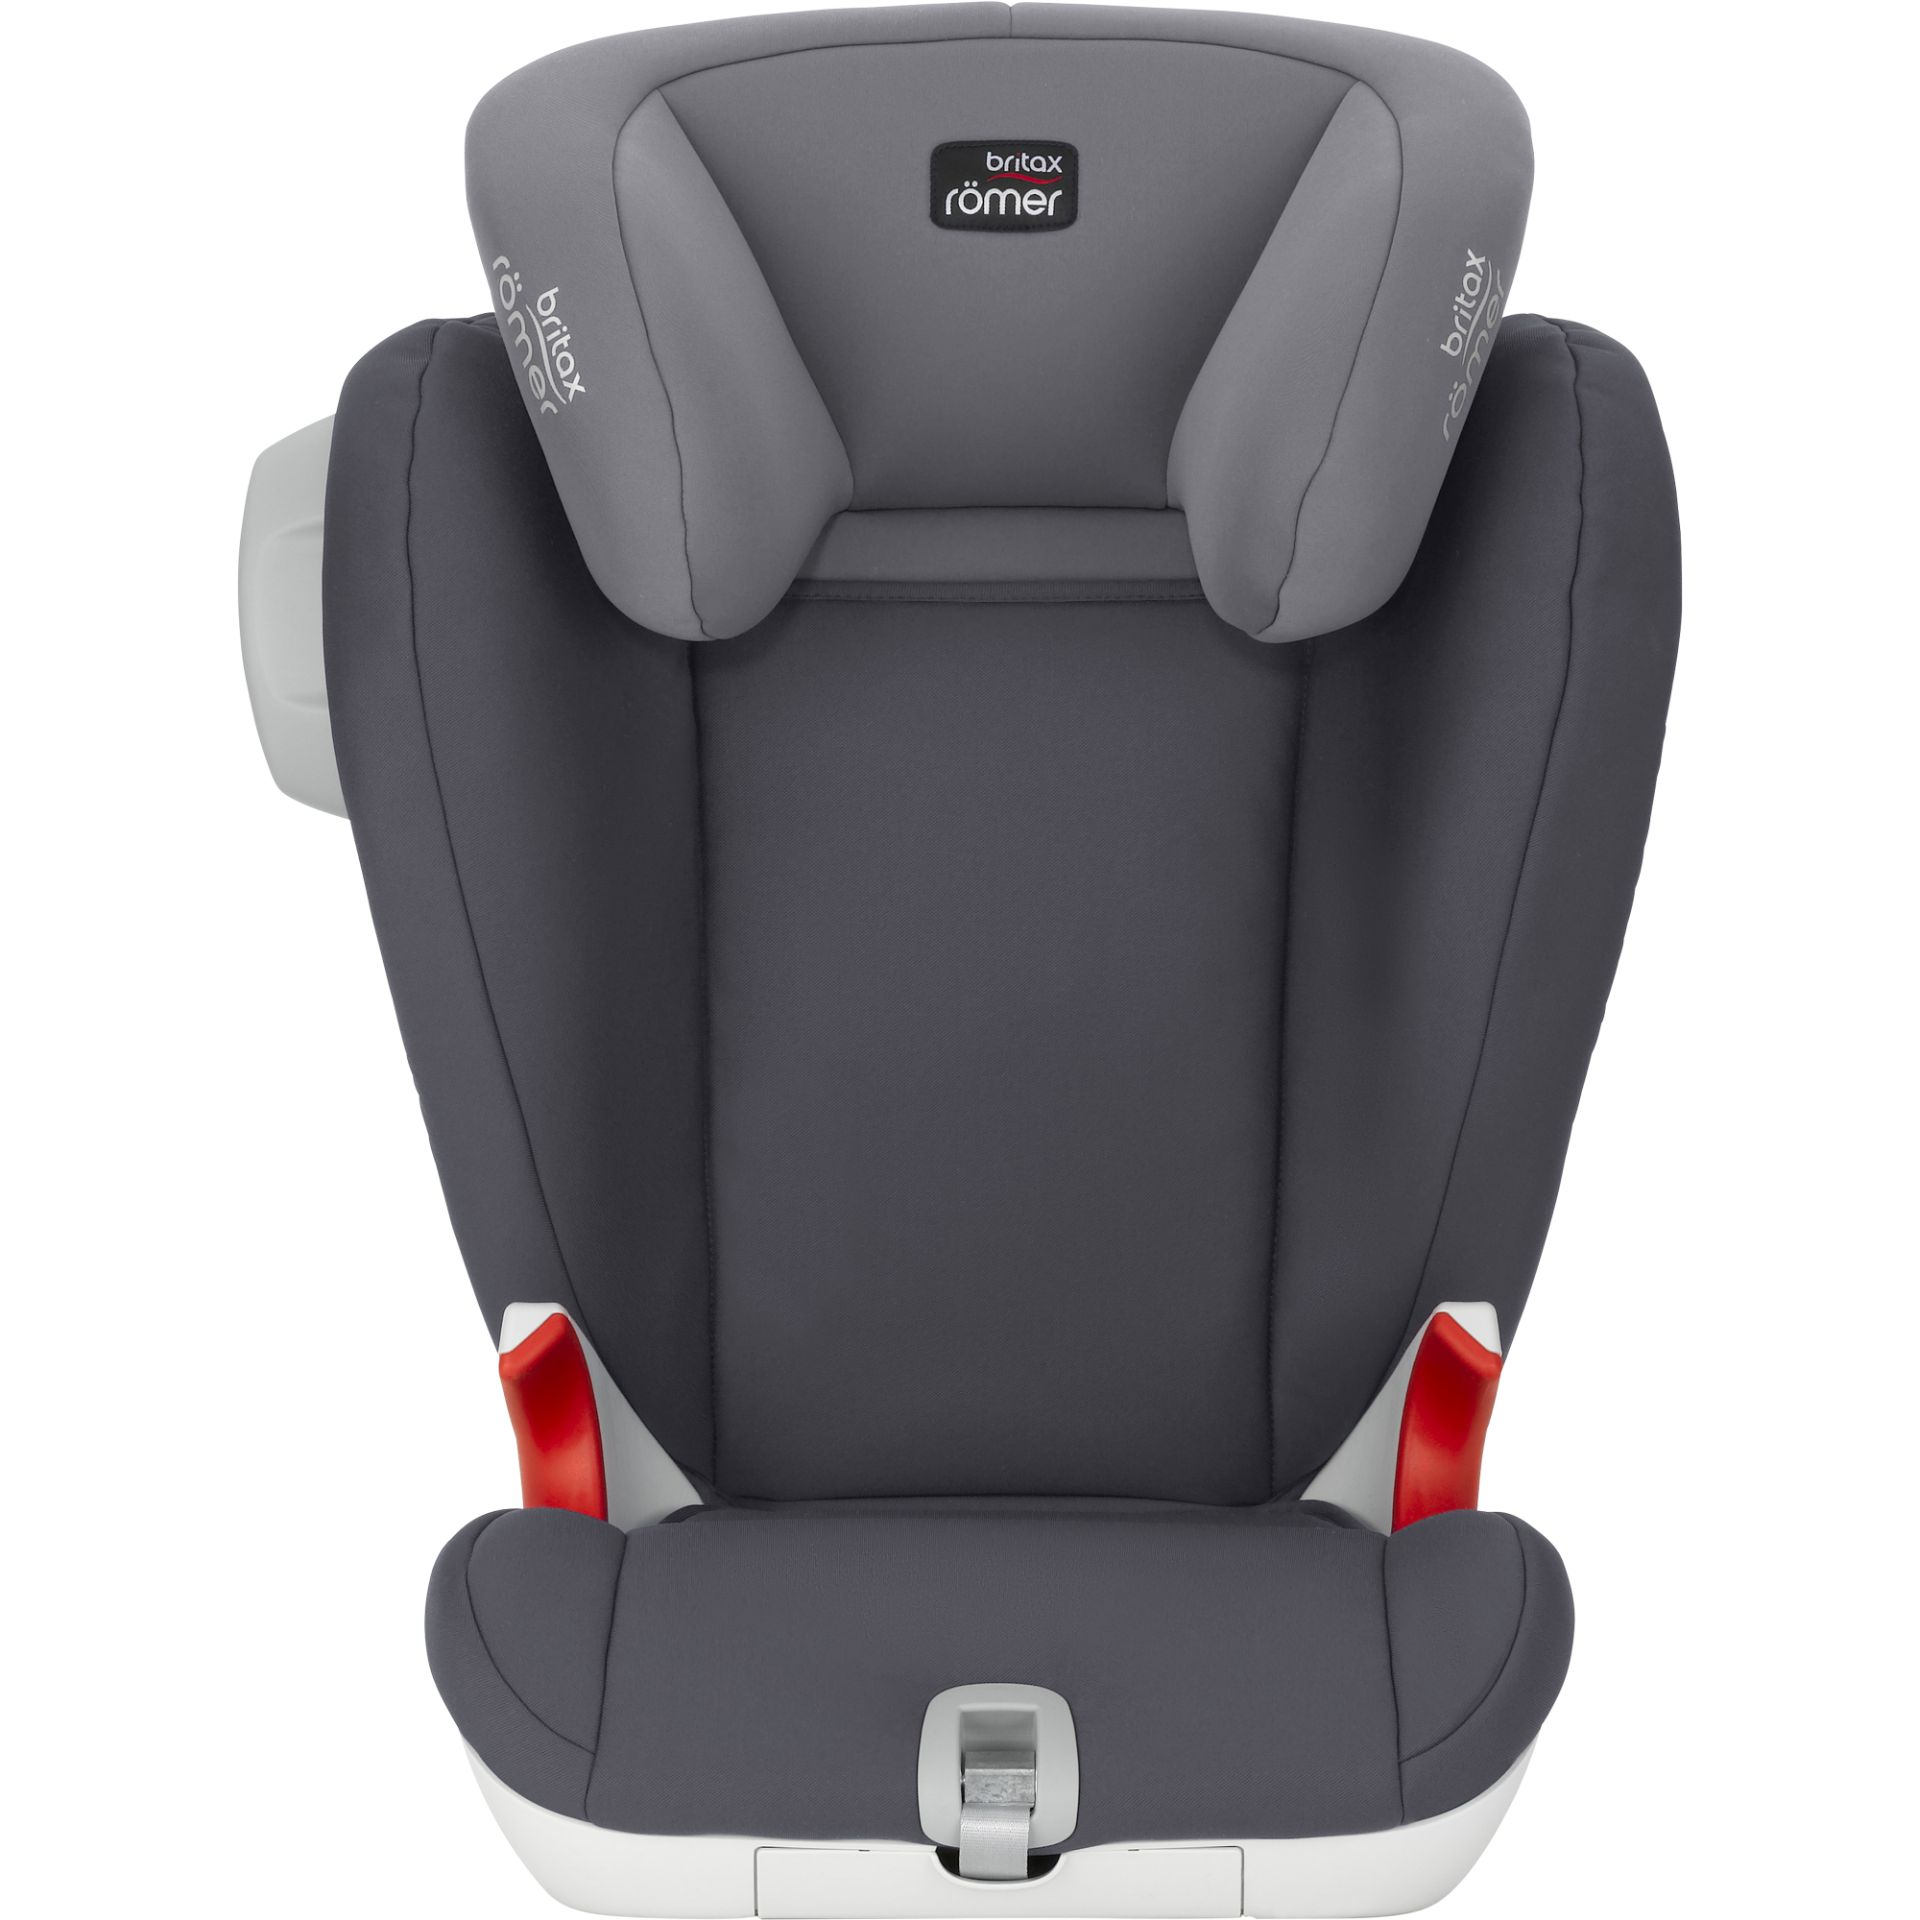 britax r mer child car seat kidfix sl sict 2019 storm grey buy at kidsroom car seats. Black Bedroom Furniture Sets. Home Design Ideas